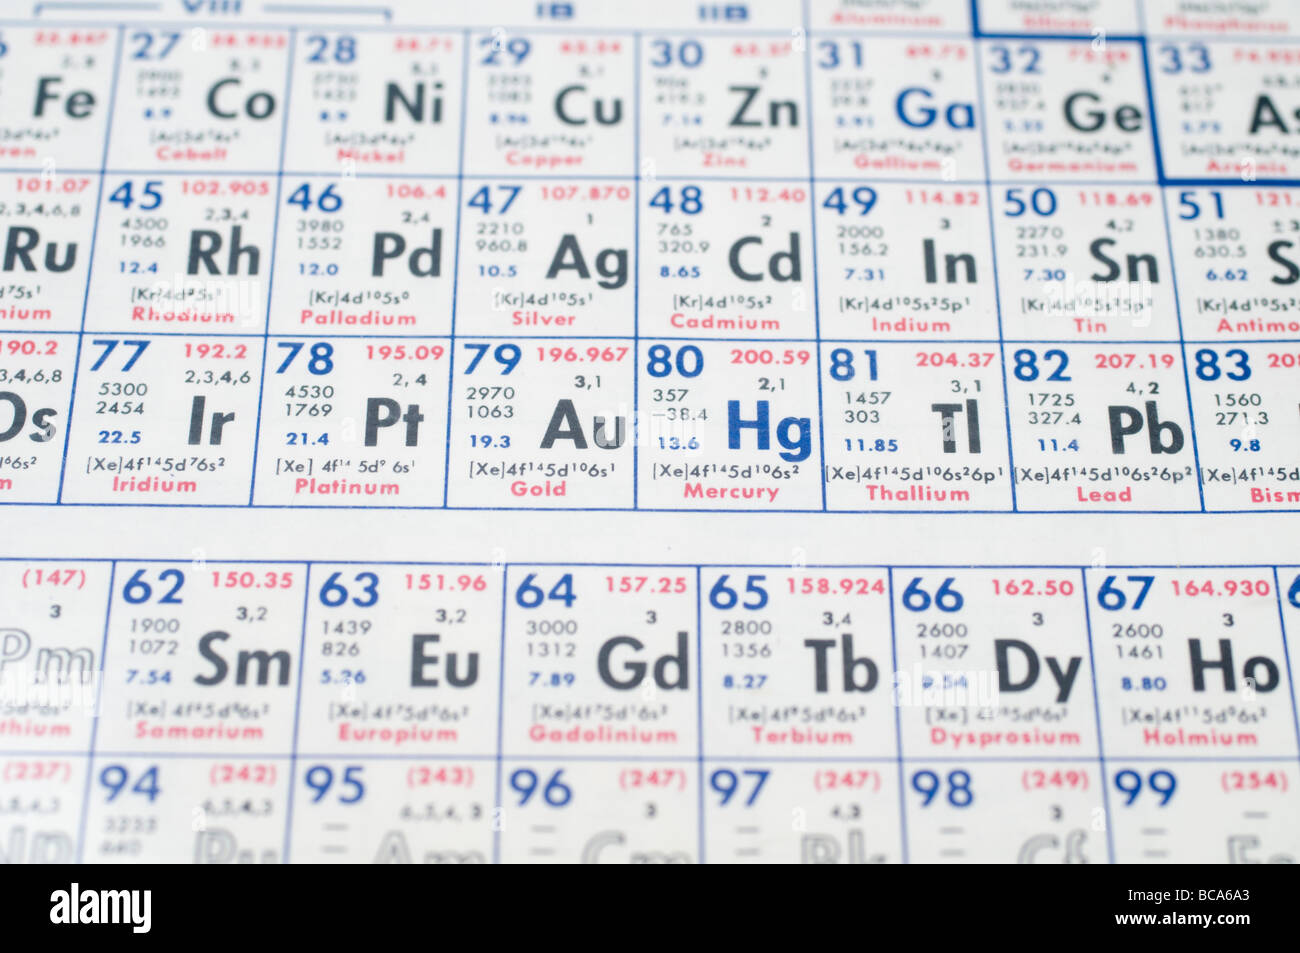 Chemical periodic table selective focus the periodic table shows chemical periodic table selective focus the periodic table shows the chemical elements ordered by atomic number gamestrikefo Image collections